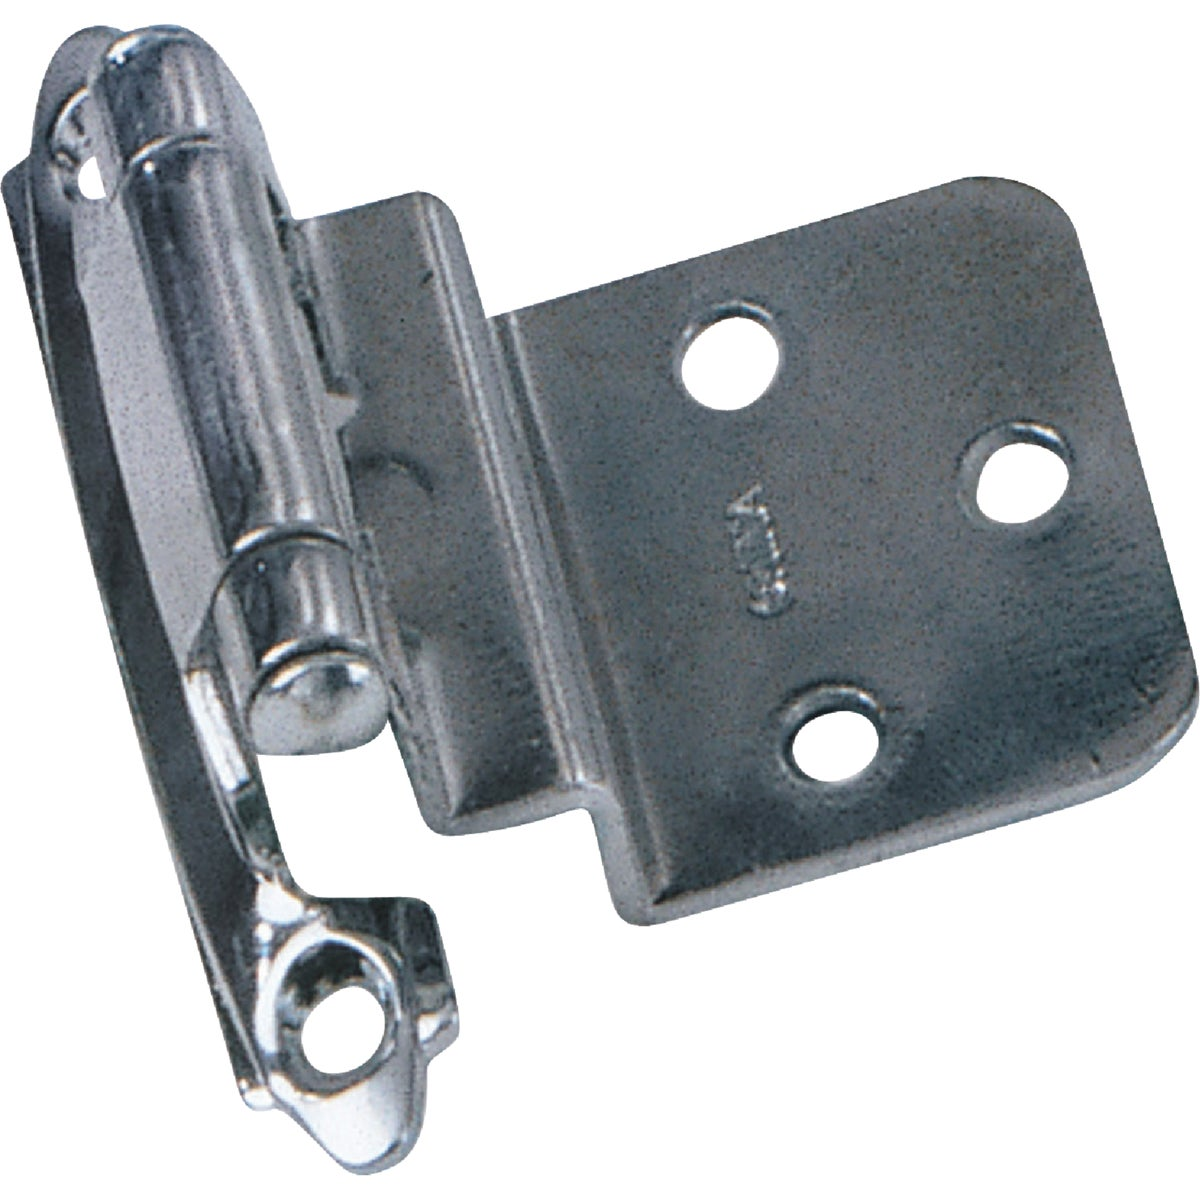 CHROME HINGE - 28626 by Laurey Co